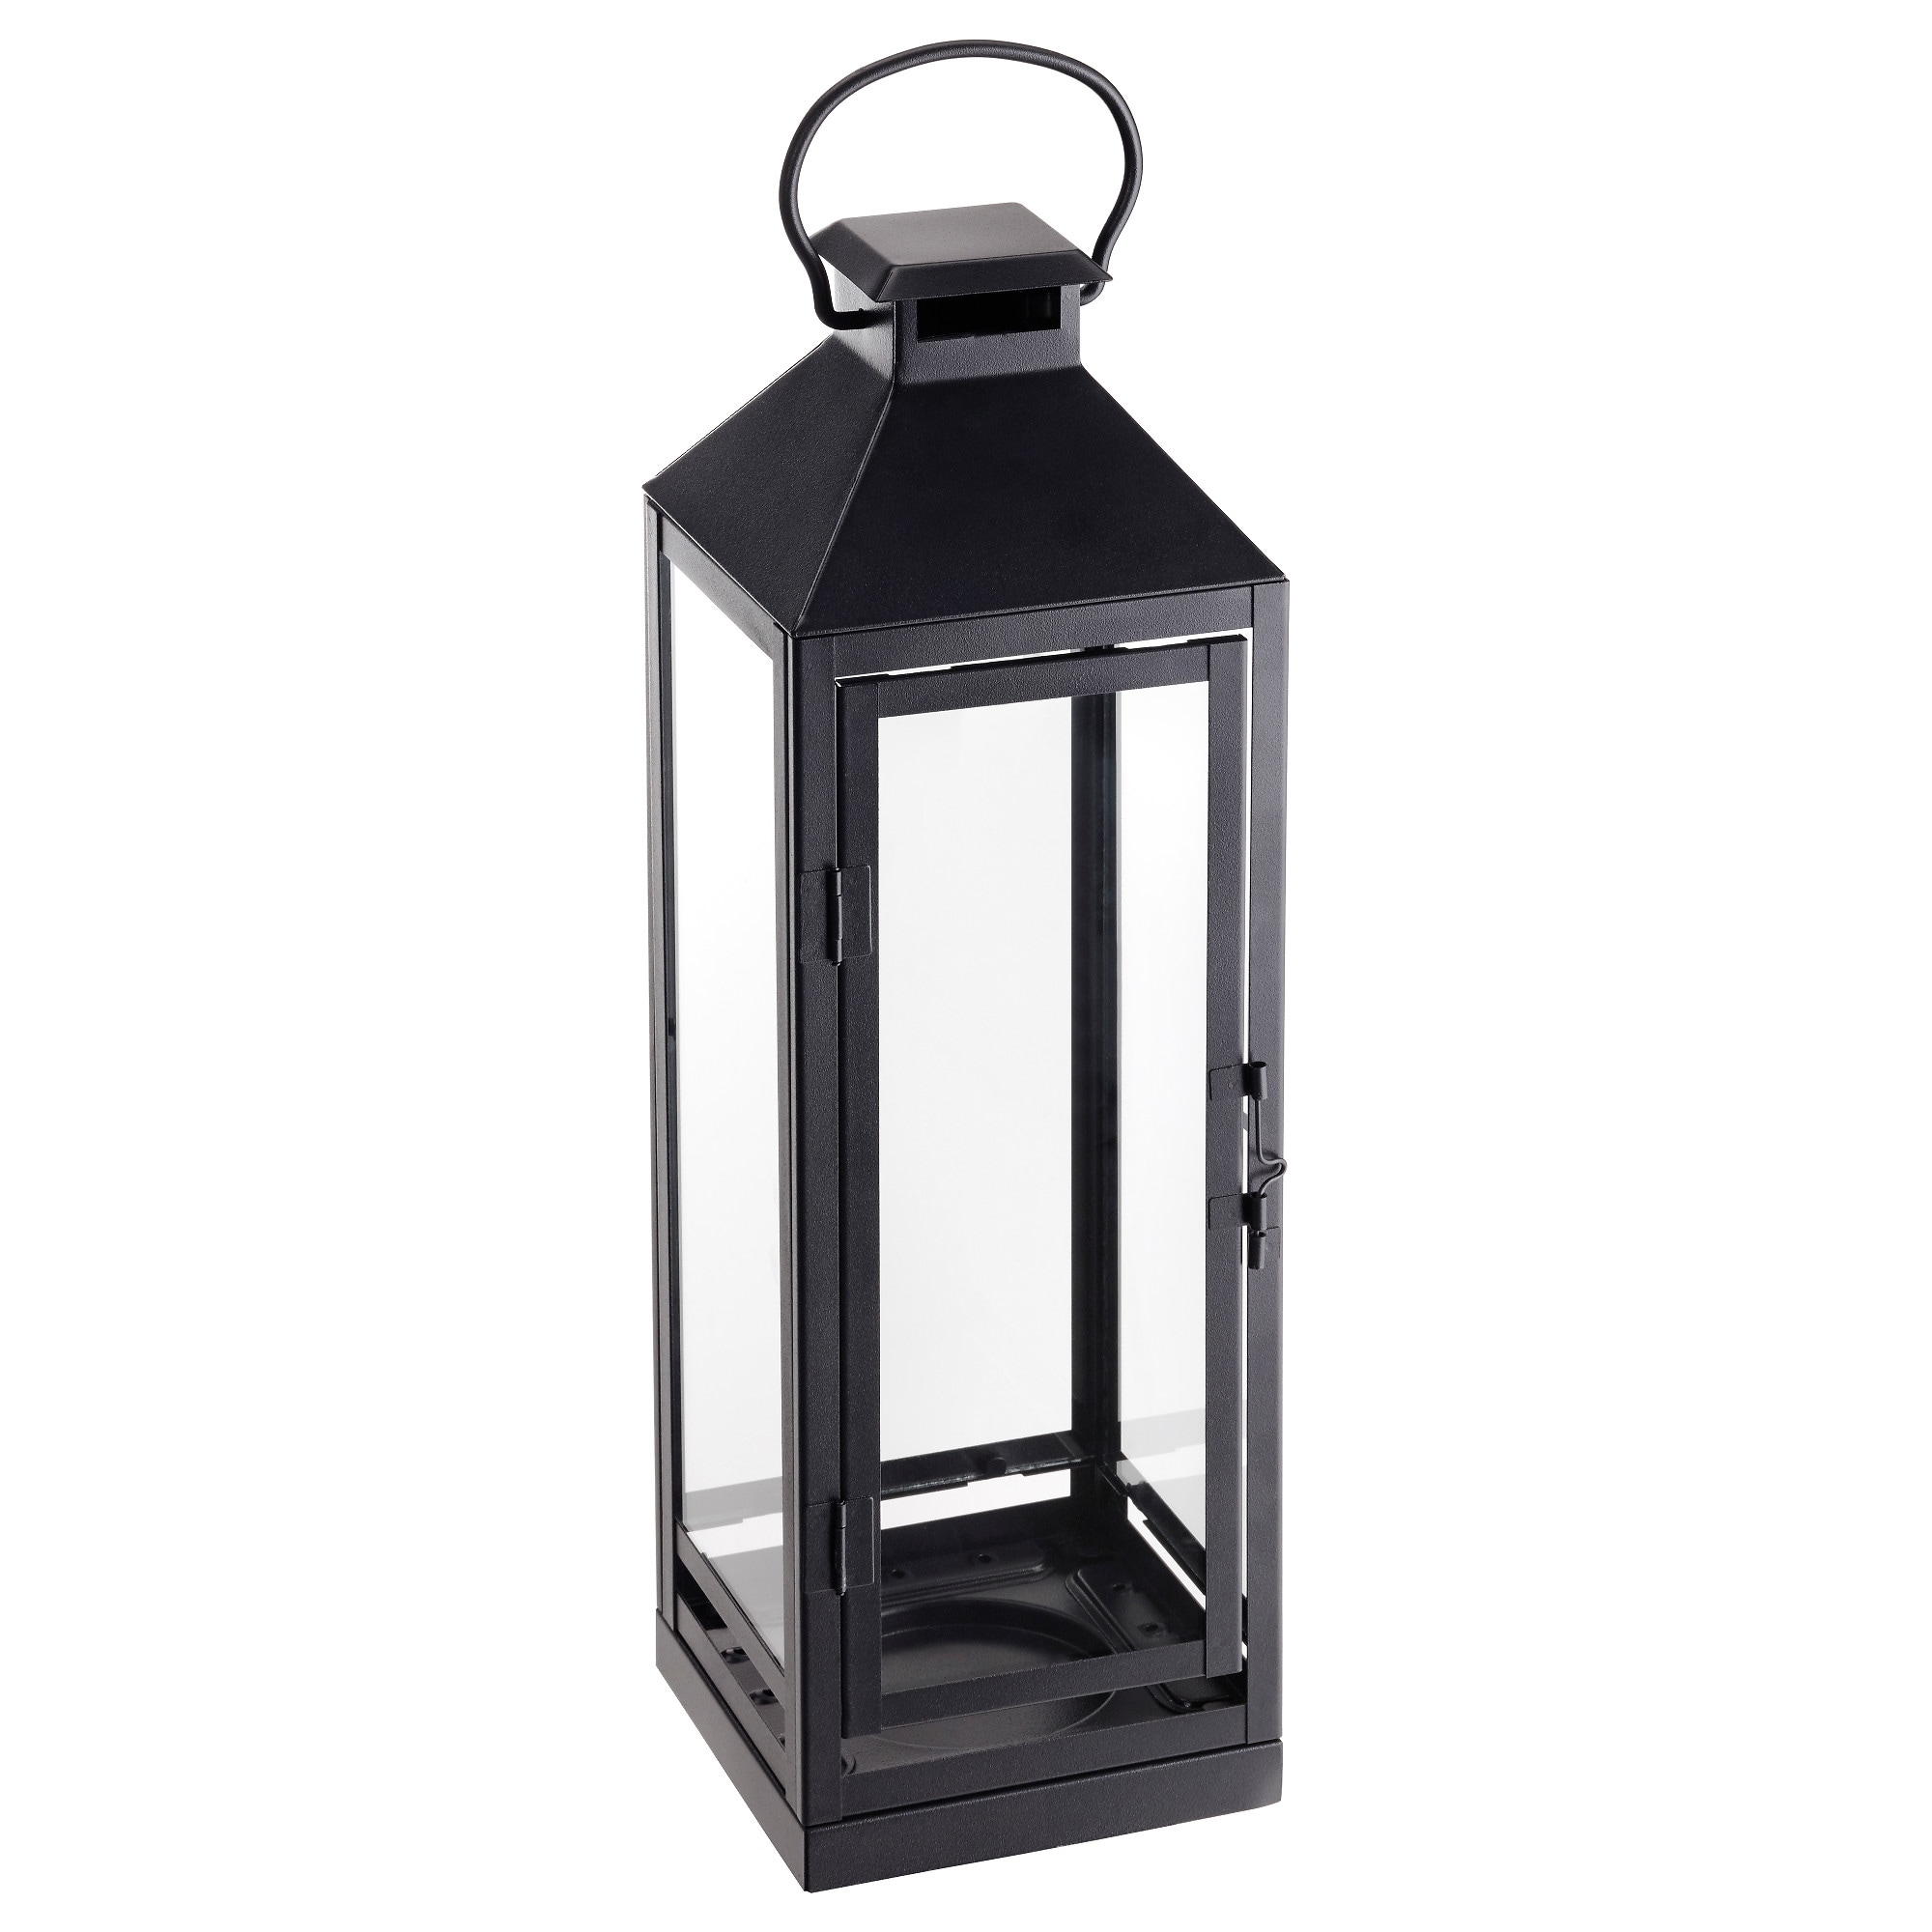 2019 Outdoor Plastic Lanterns With Regard To Lanterns & Candle Lanterns – Ikea (Gallery 12 of 20)